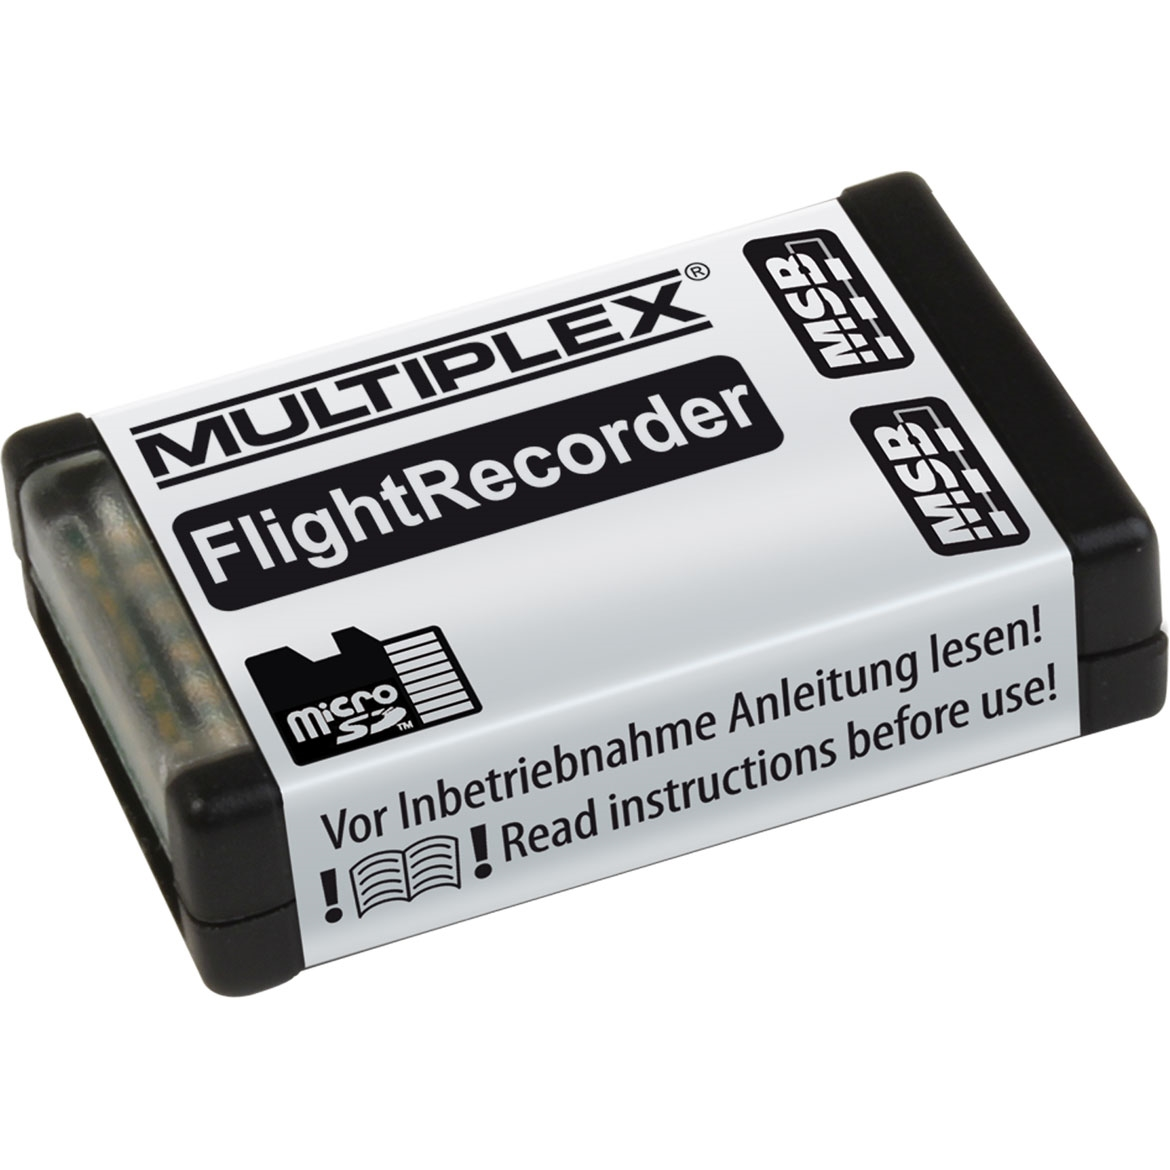 Flight_Recorder_Multiplex